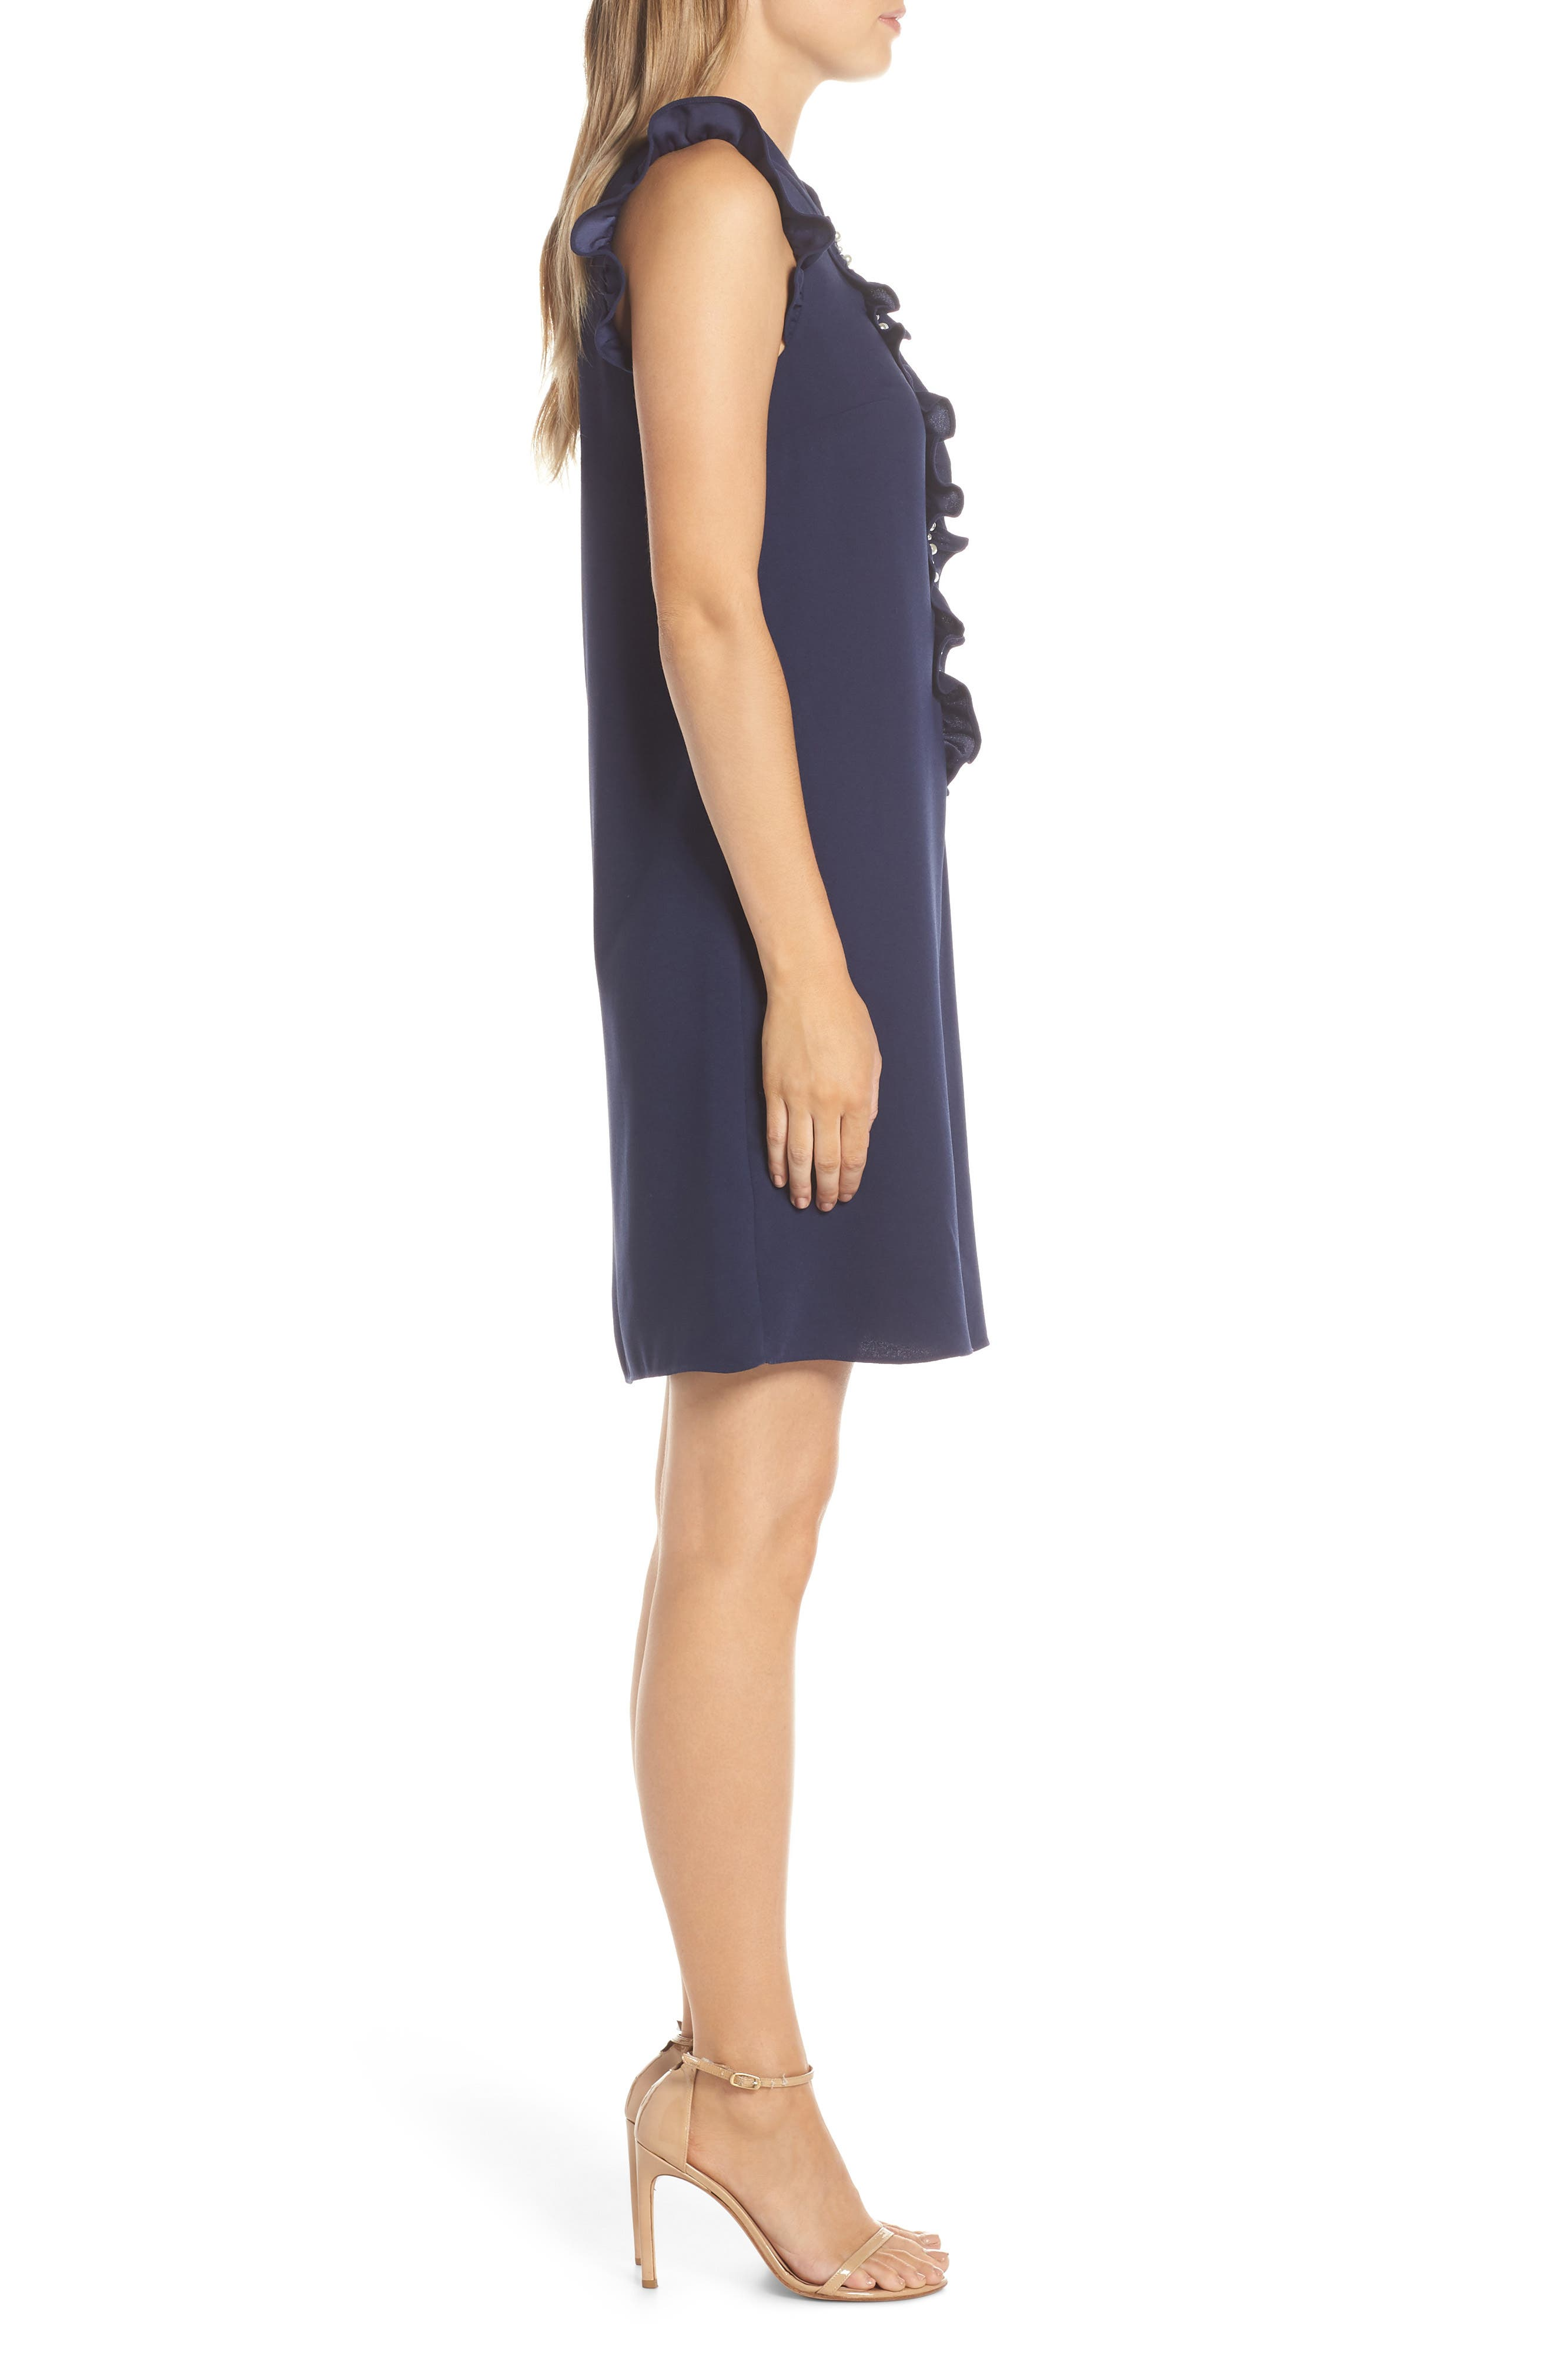 LILLY PULITZER<SUP>®</SUP>, Adalee Shift Dress, Alternate thumbnail 3, color, TRUE NAVY